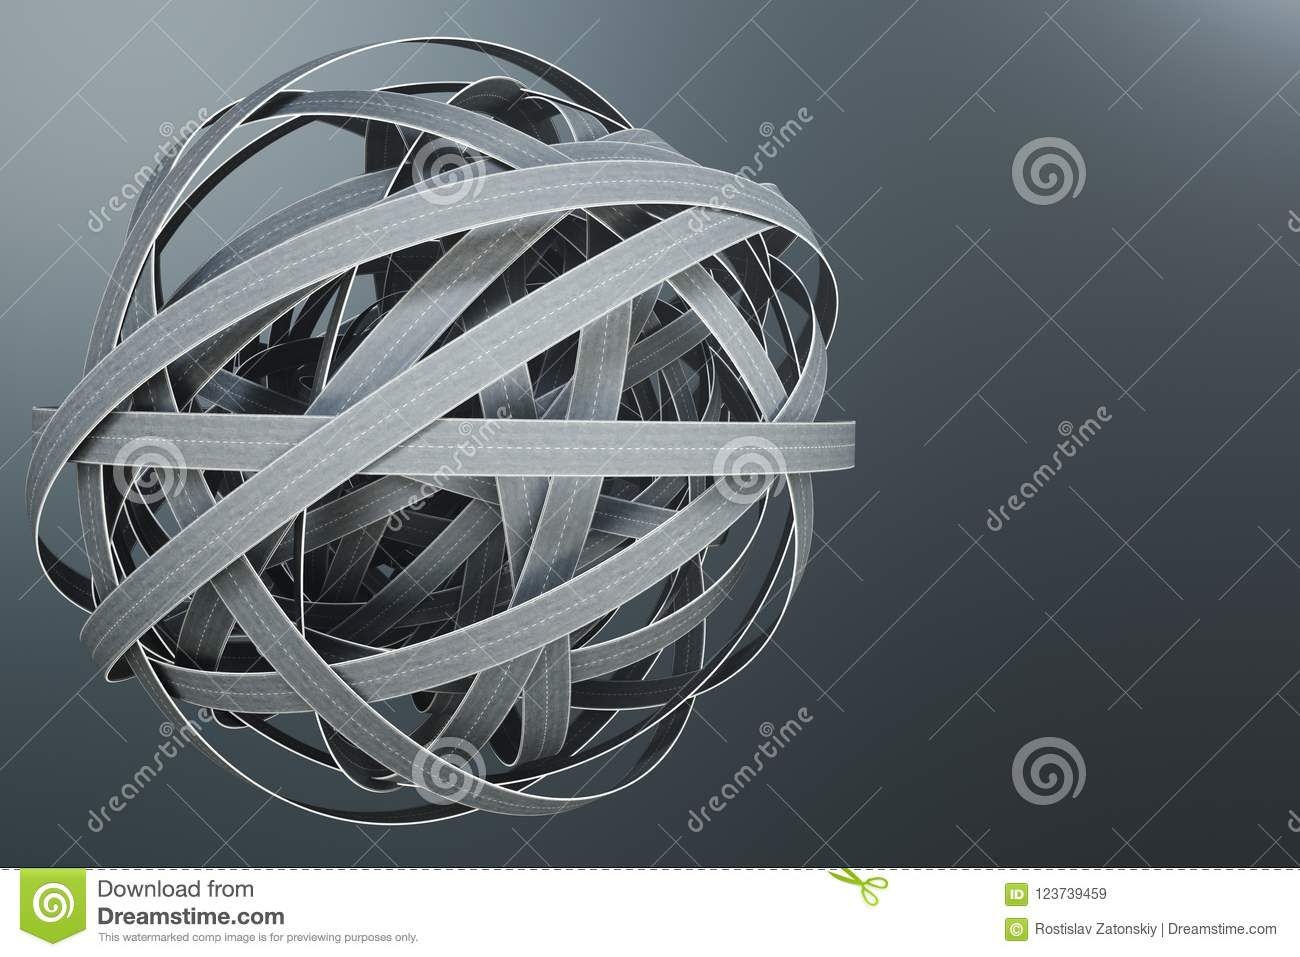 Sphere of tangled roads, on grey background. Abstract road knot. Concept travel, transportation. 3D illustration